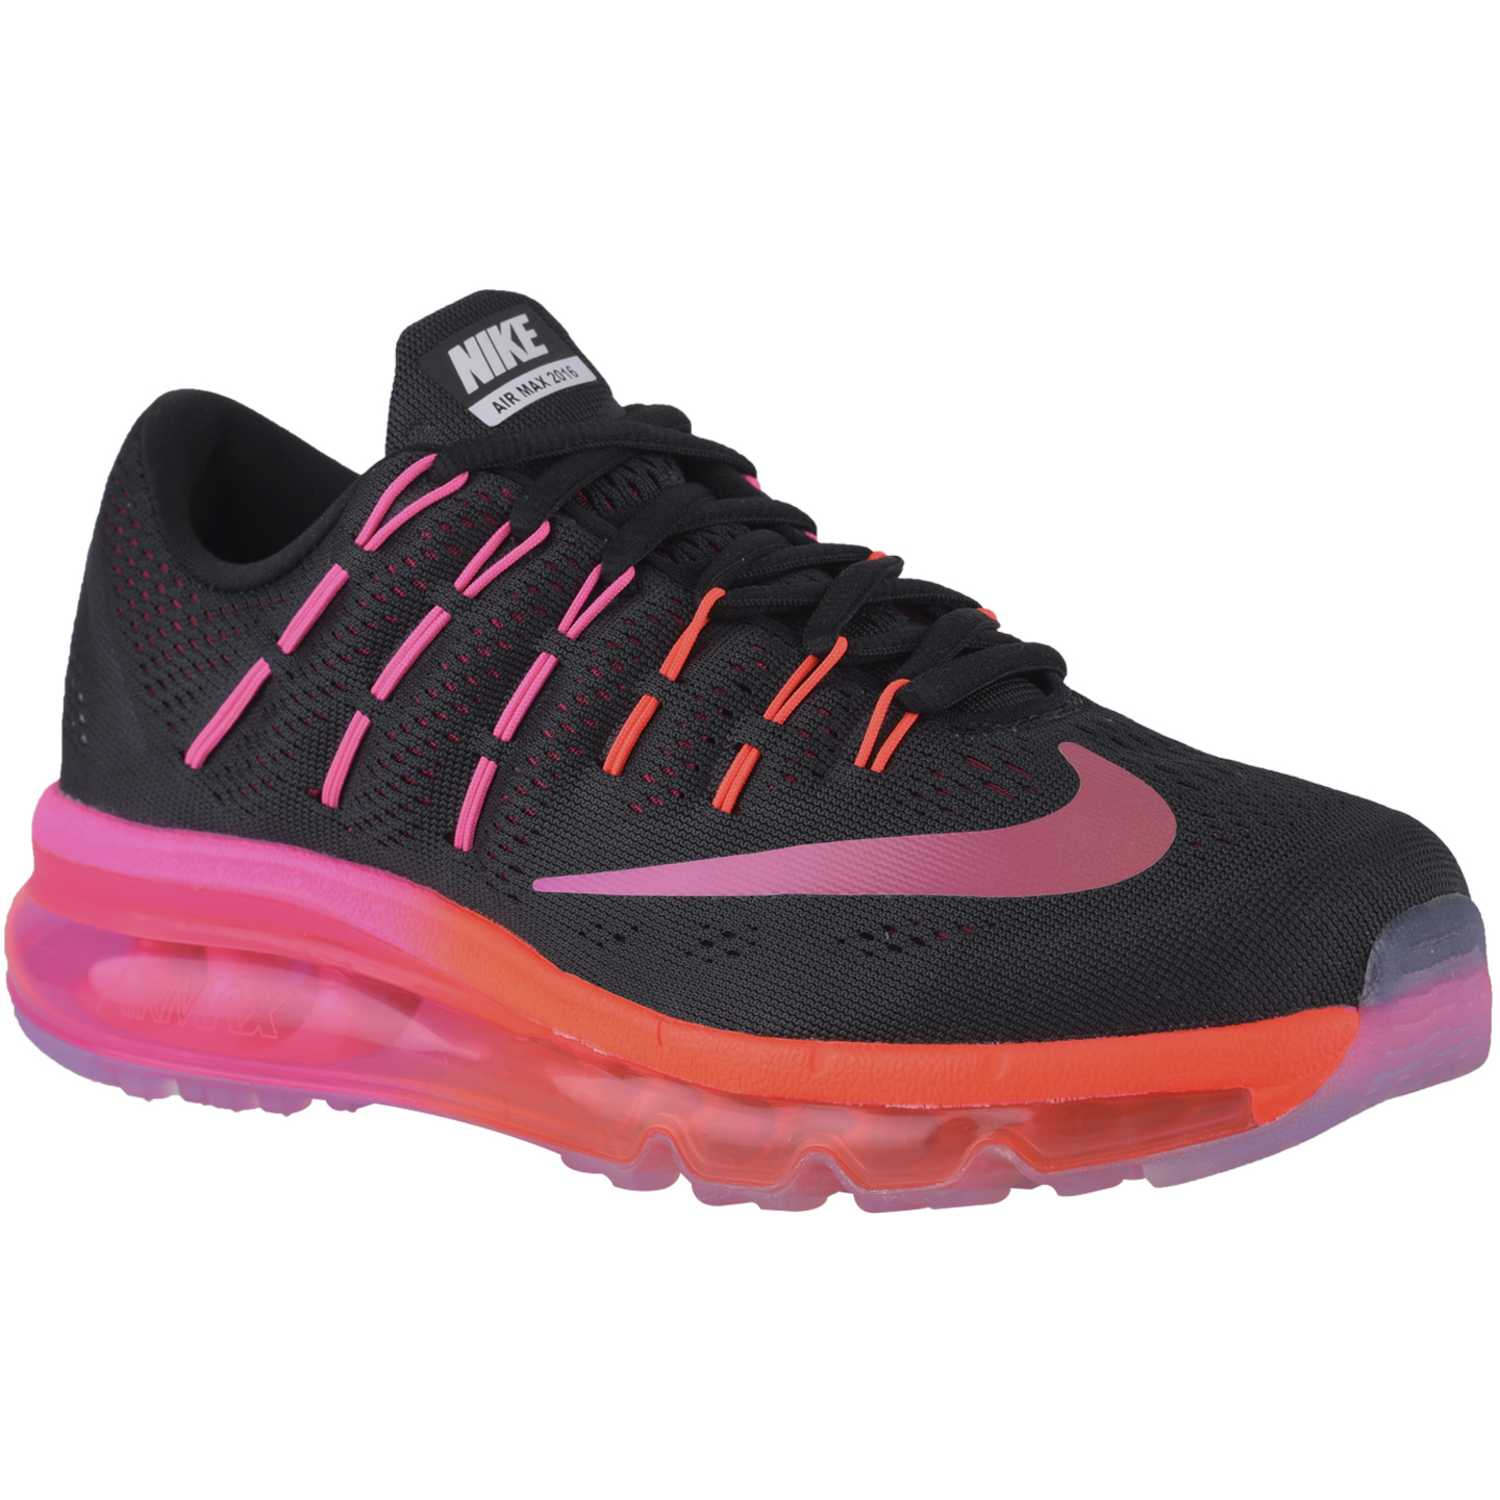 outlet store b73b9 5a042 ... coupon for zapatilla de mujer nike negro fucsia wmns air max 2016 99793  1d524